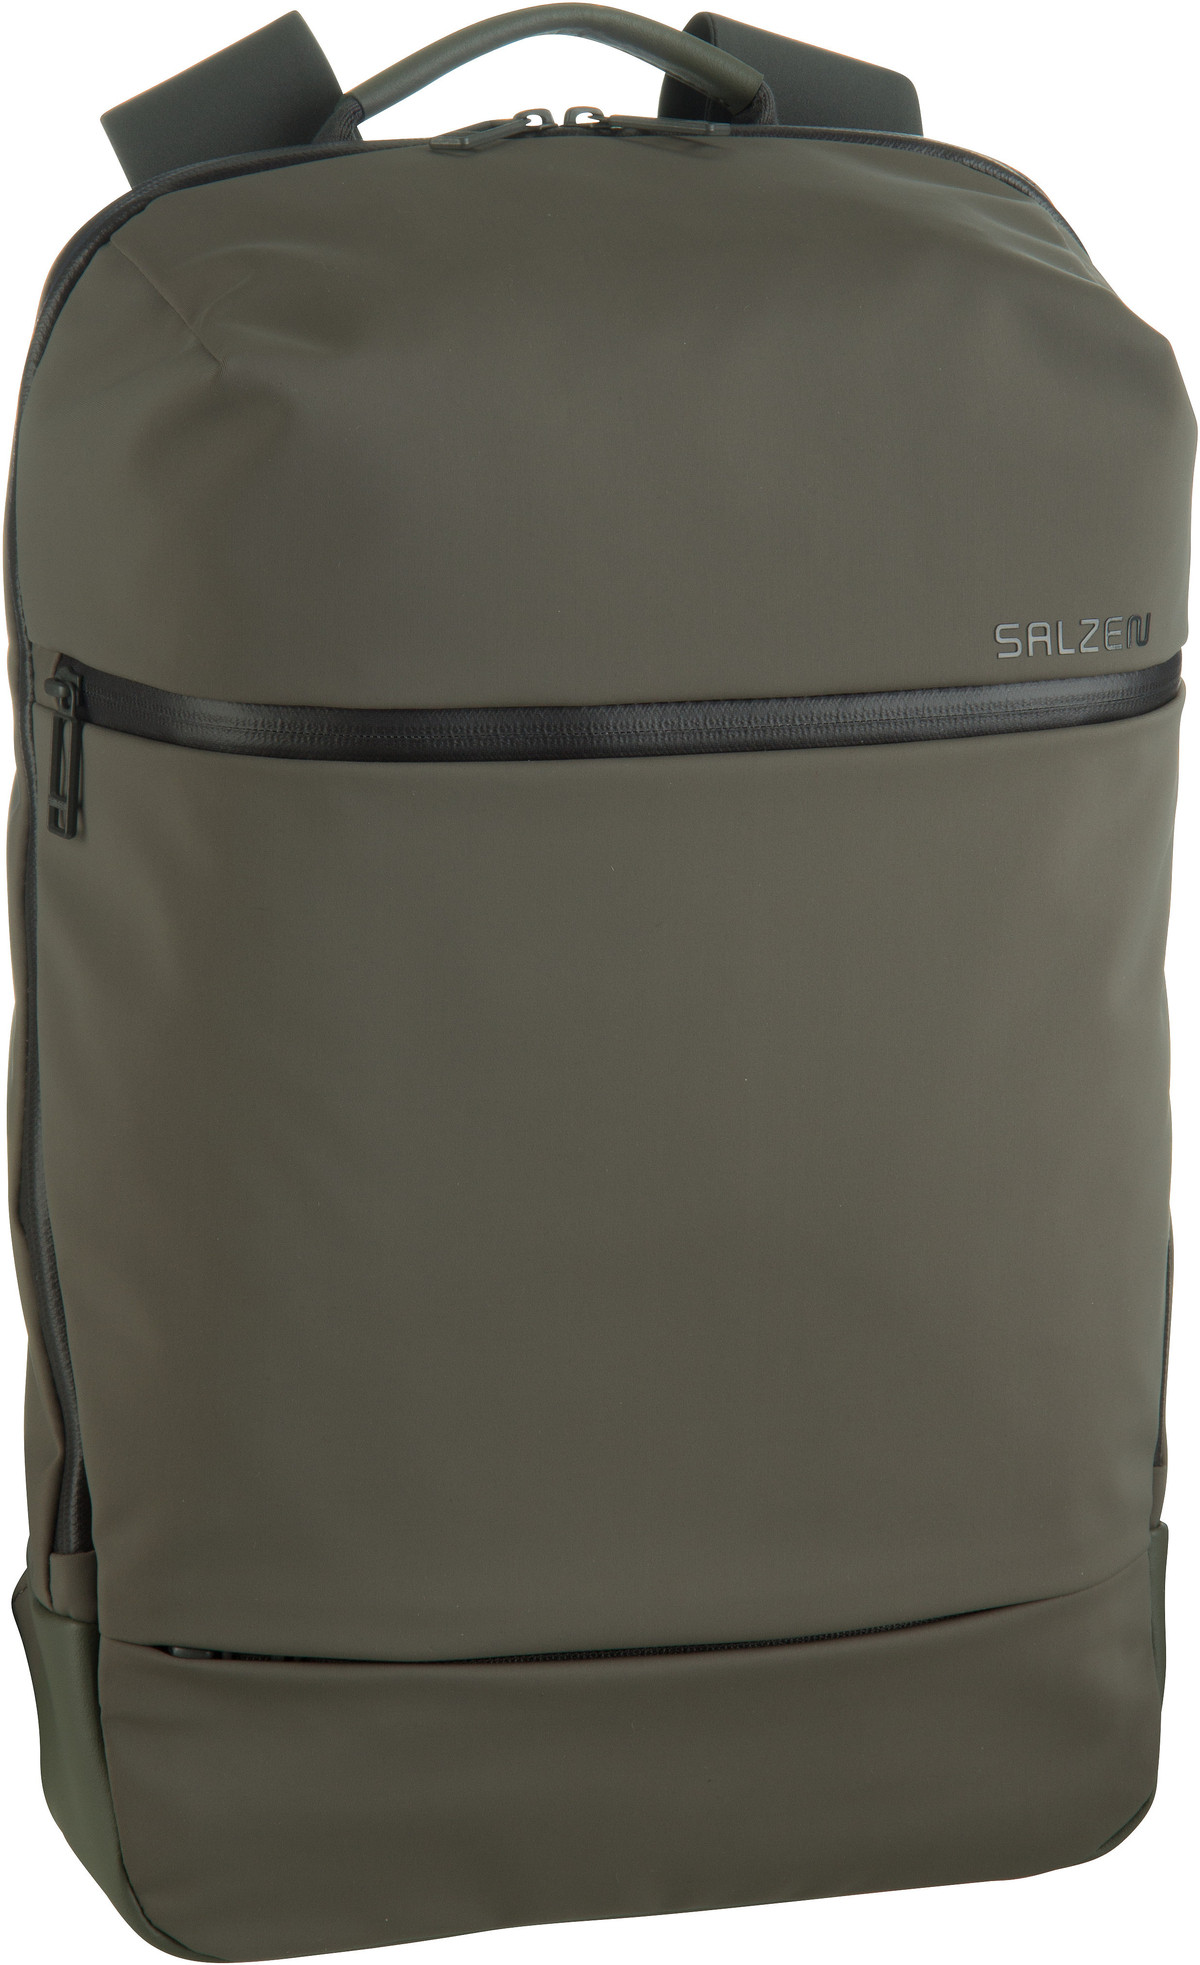 Laptoprucksack Savvy Fabric Olive Grey (15 Liter)